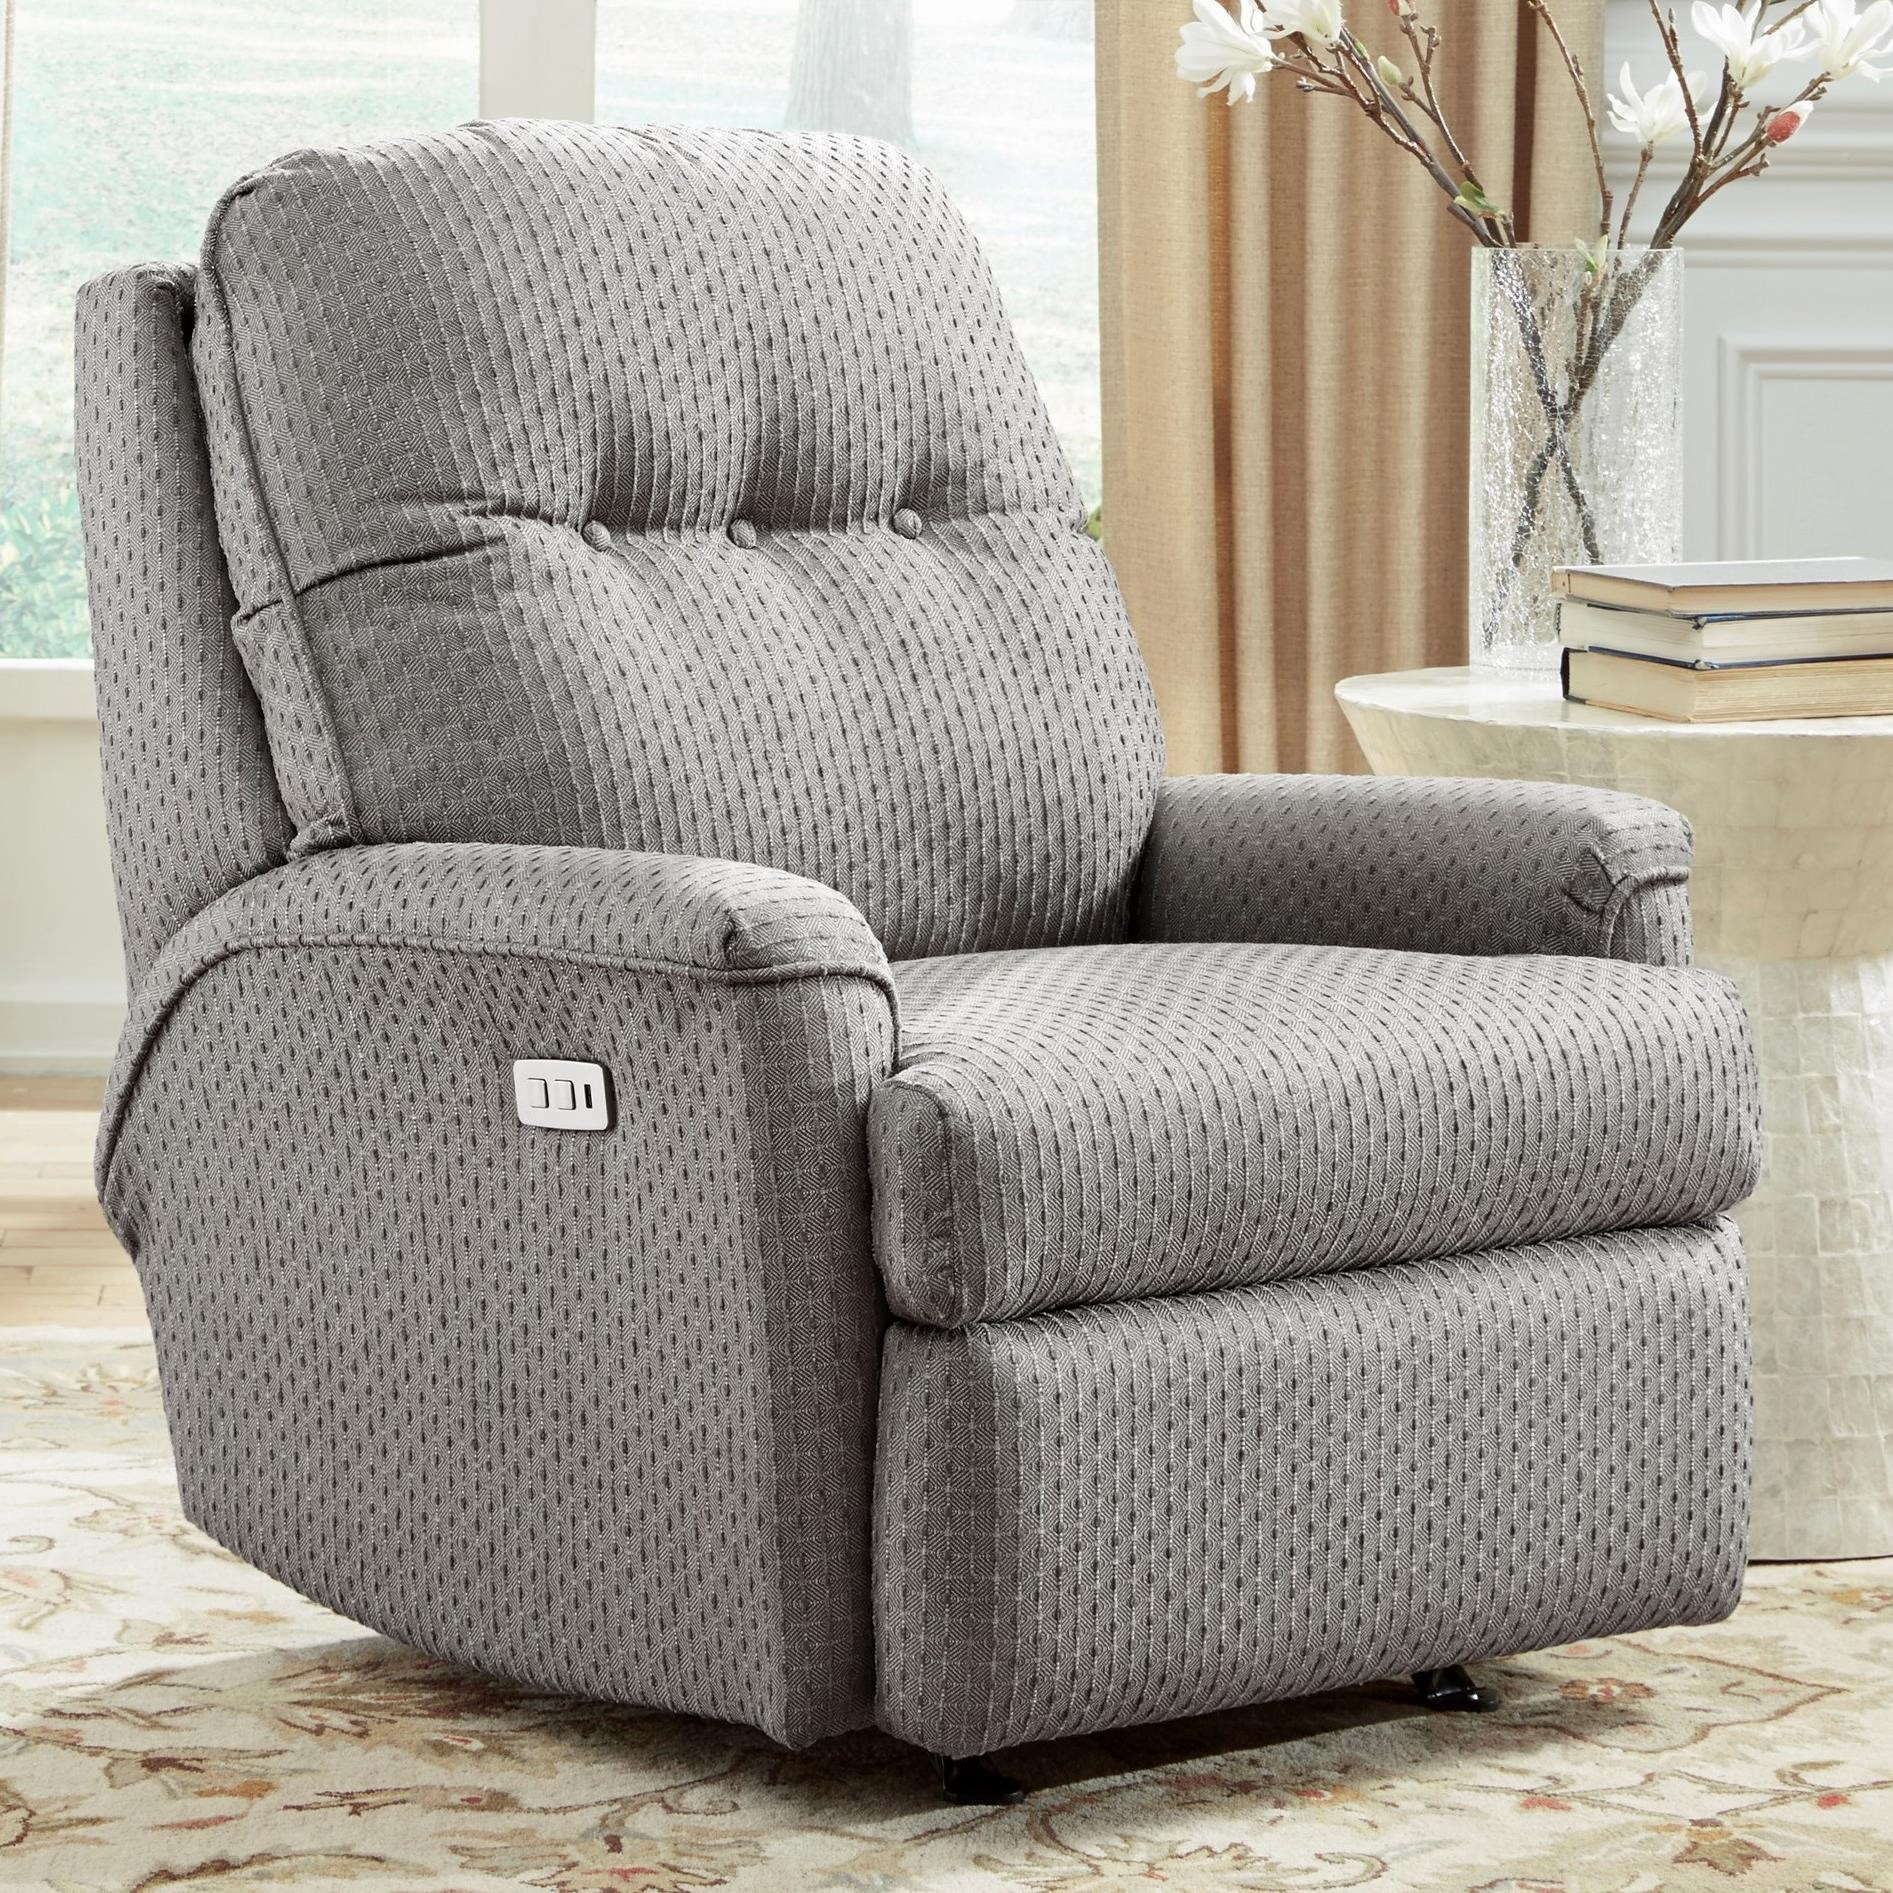 Gigi Layflat Lift Recliner w/ Pwr Hdrst & SoCozi by Southern Motion at Sparks HomeStore